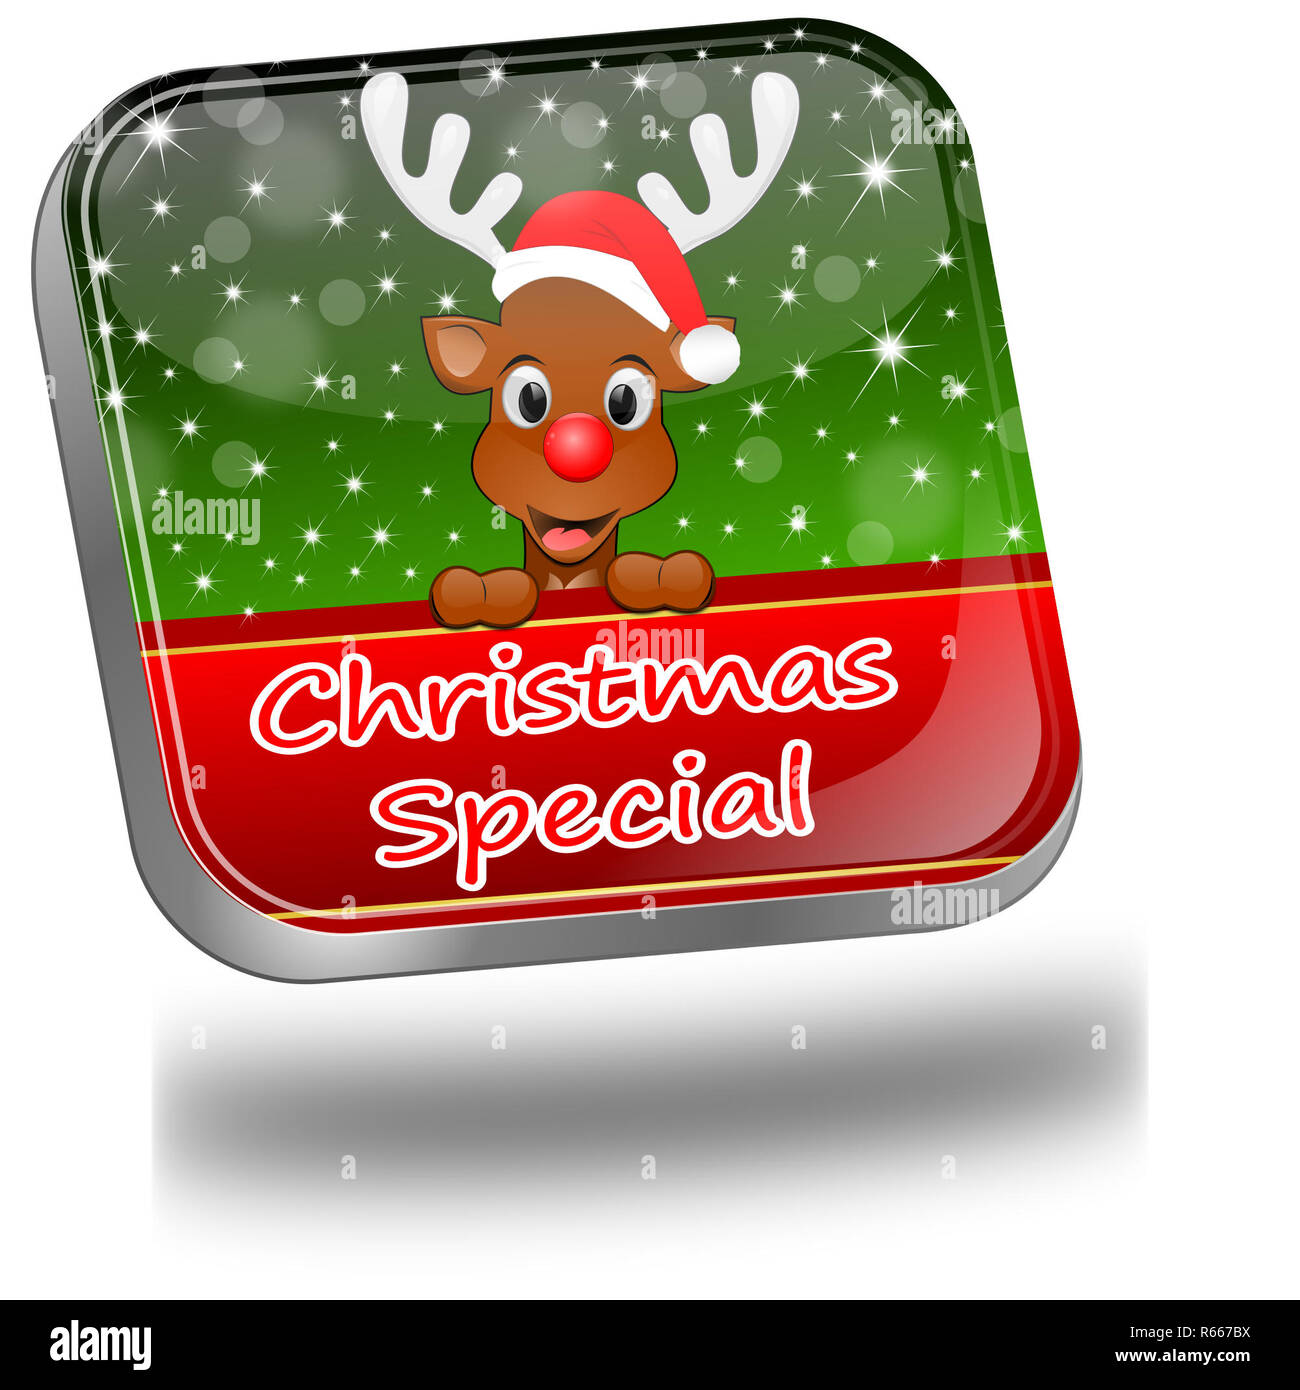 decorative green Christmas Special button - 3D illustration - Stock Image